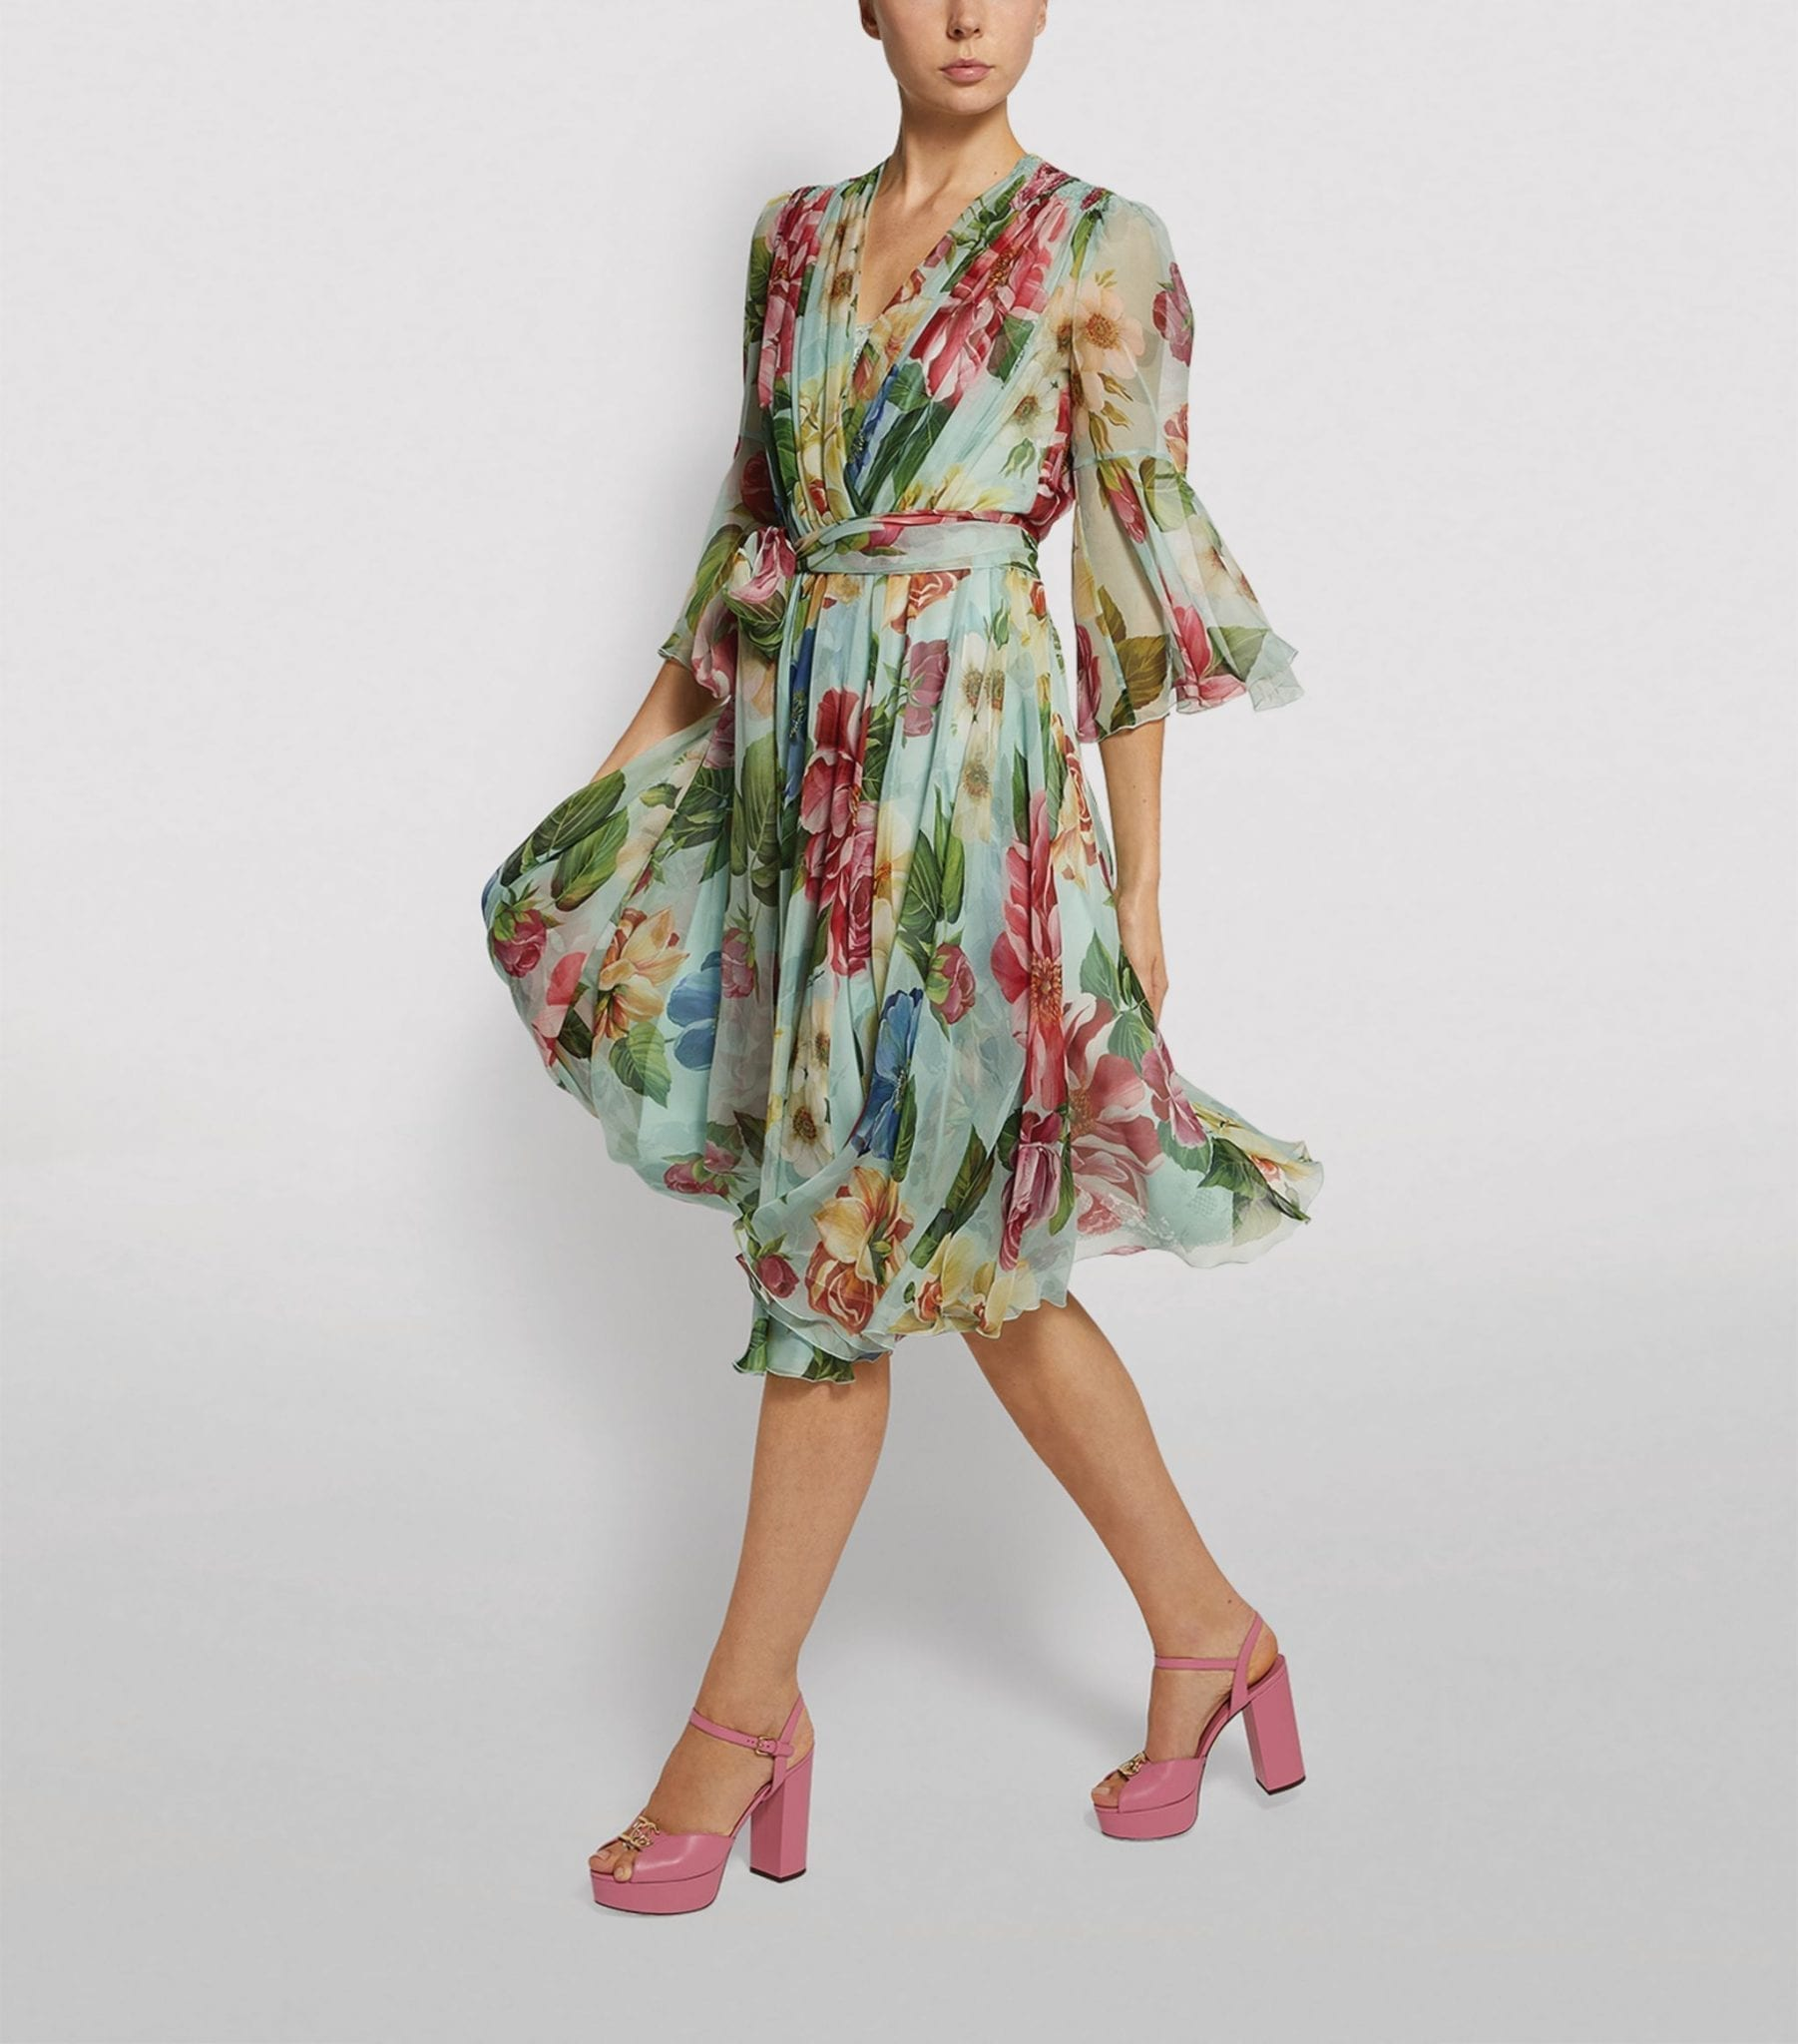 DOLCE & GABBANA Silk Floral Wrap Dress